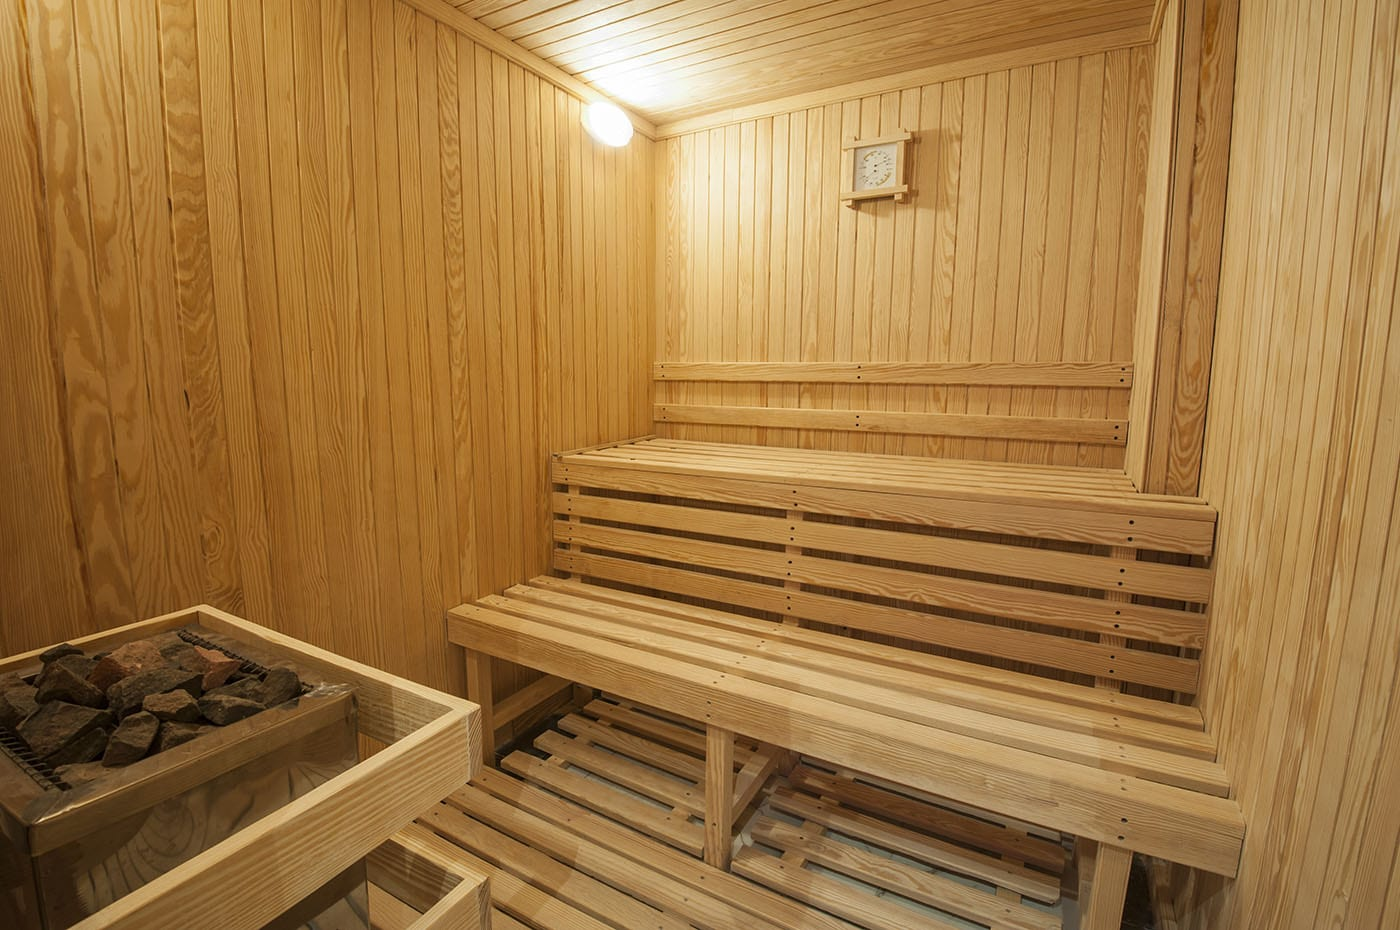 After your work out, you can enjoy your very own and private sauna.